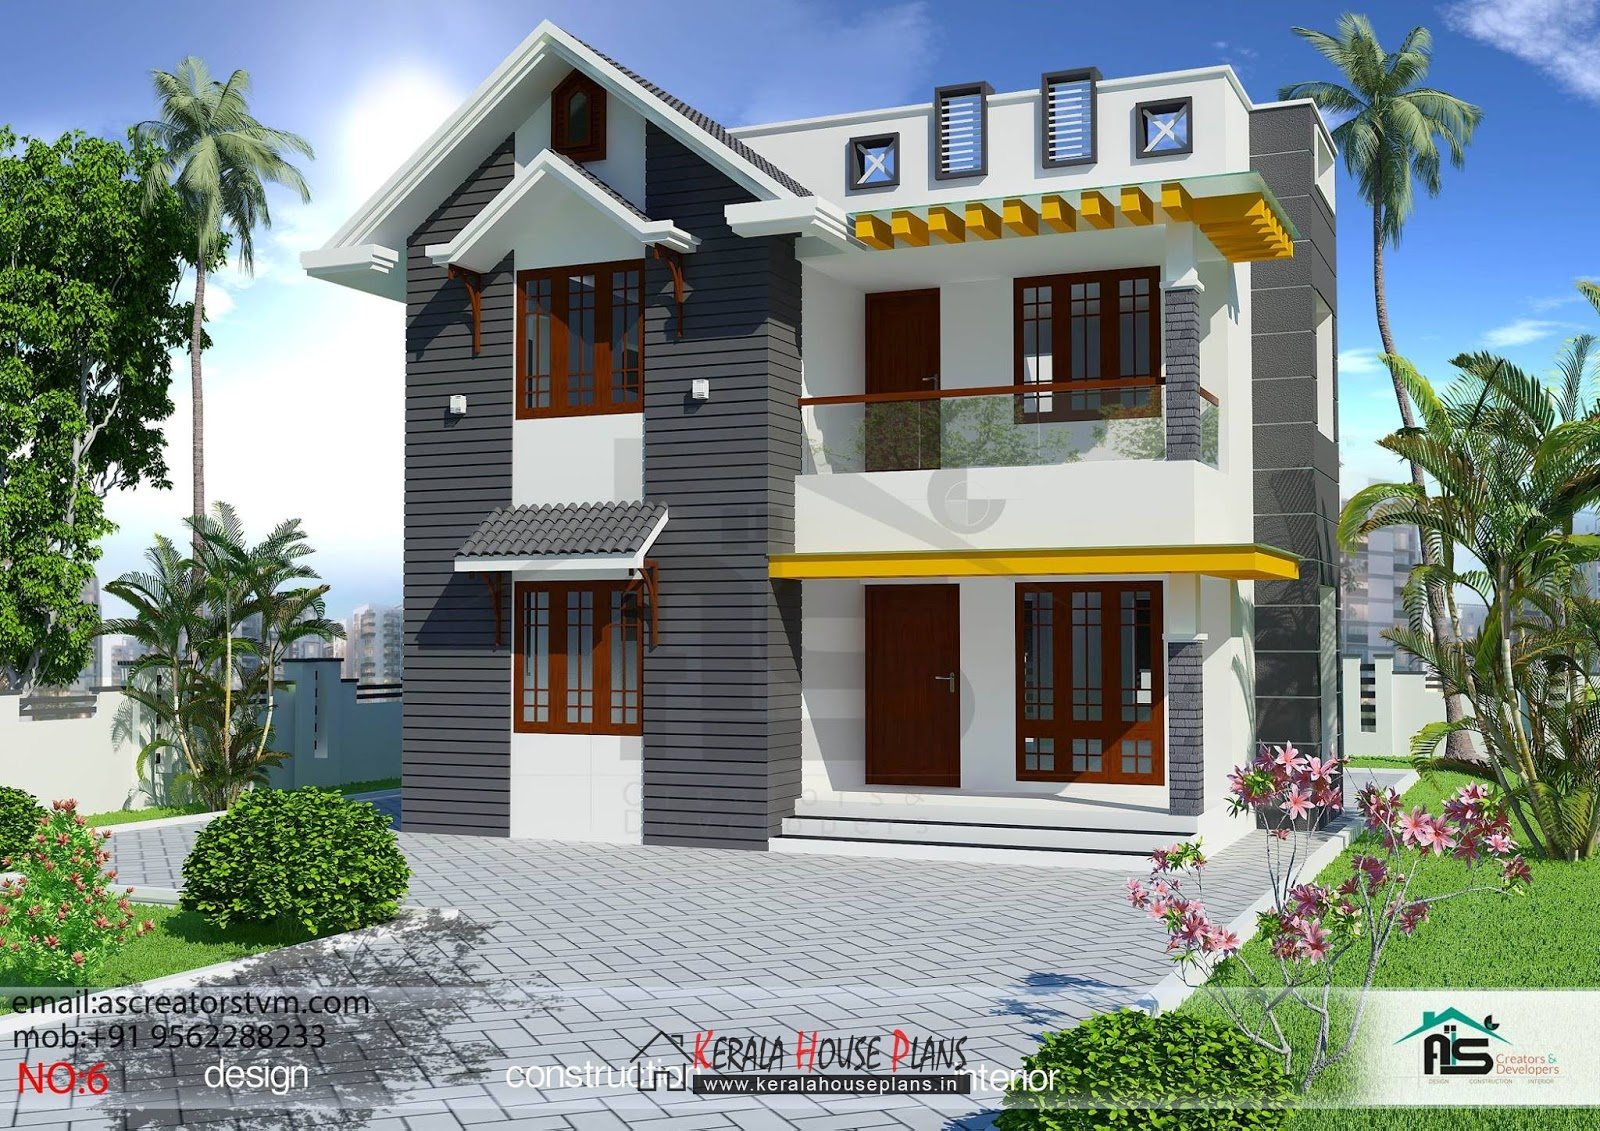 3 bedroom house plans in kerala double floor kerala for 3 floor house design